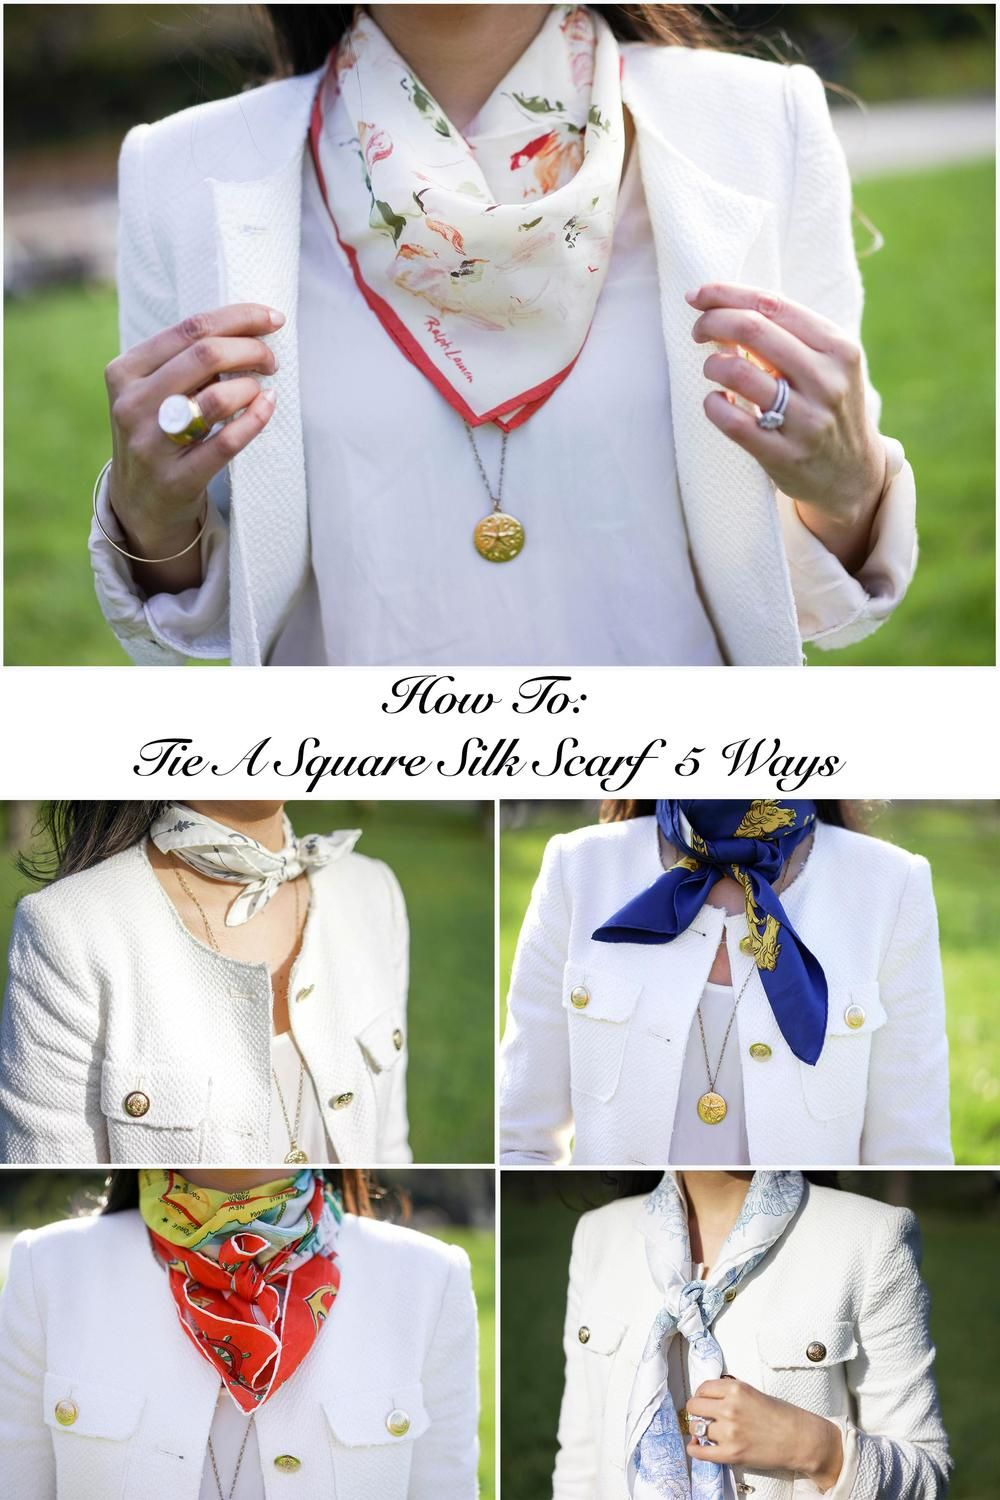 How To Tie A Square Silk Scarf 5 Ways Ways to wear a